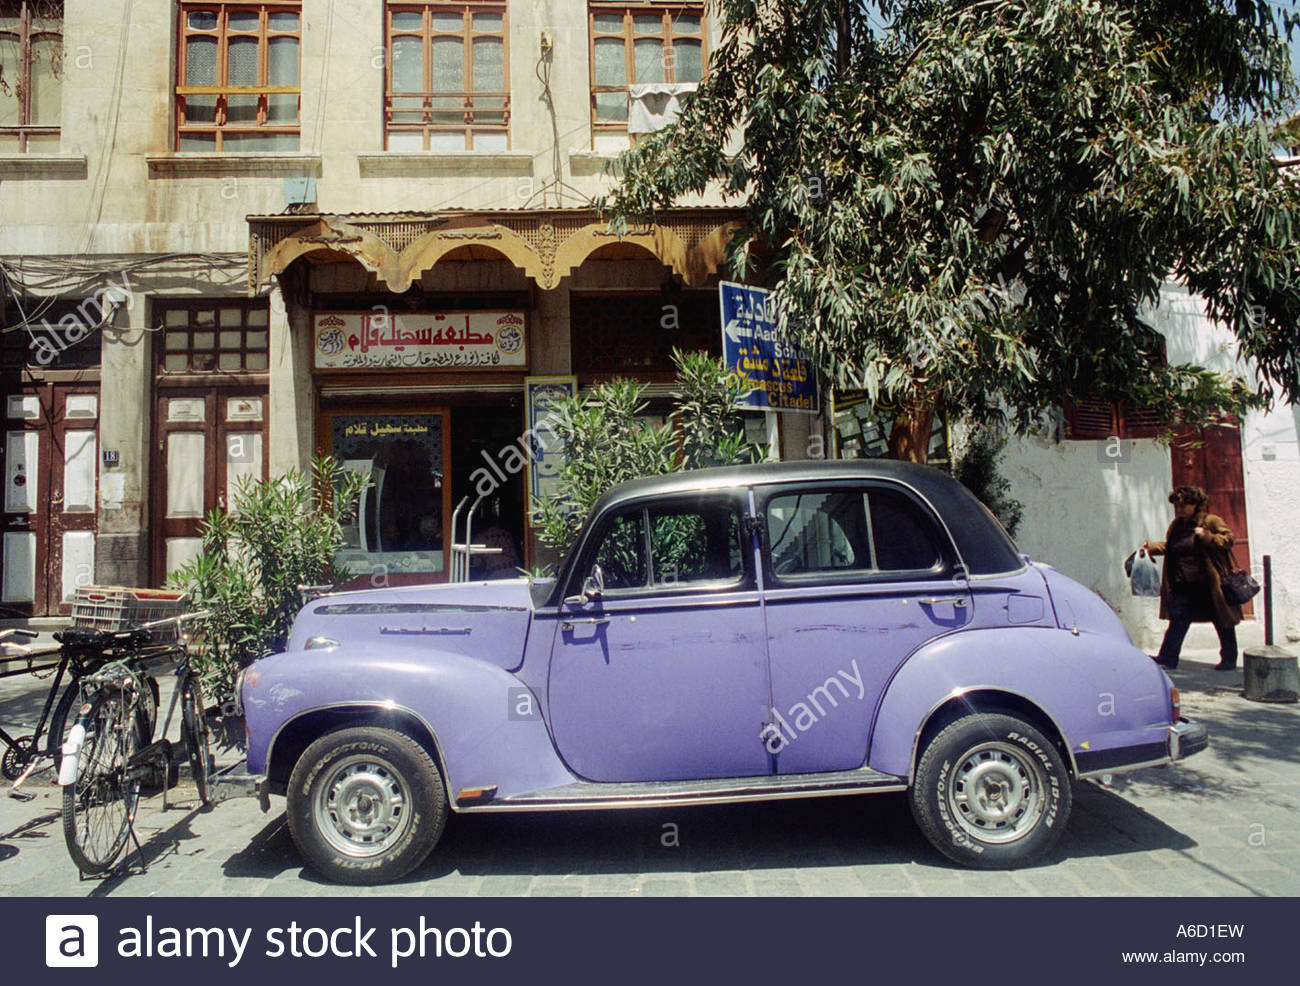 An old car and bicycles in front of a building Damaskus Syrien - Stock Image